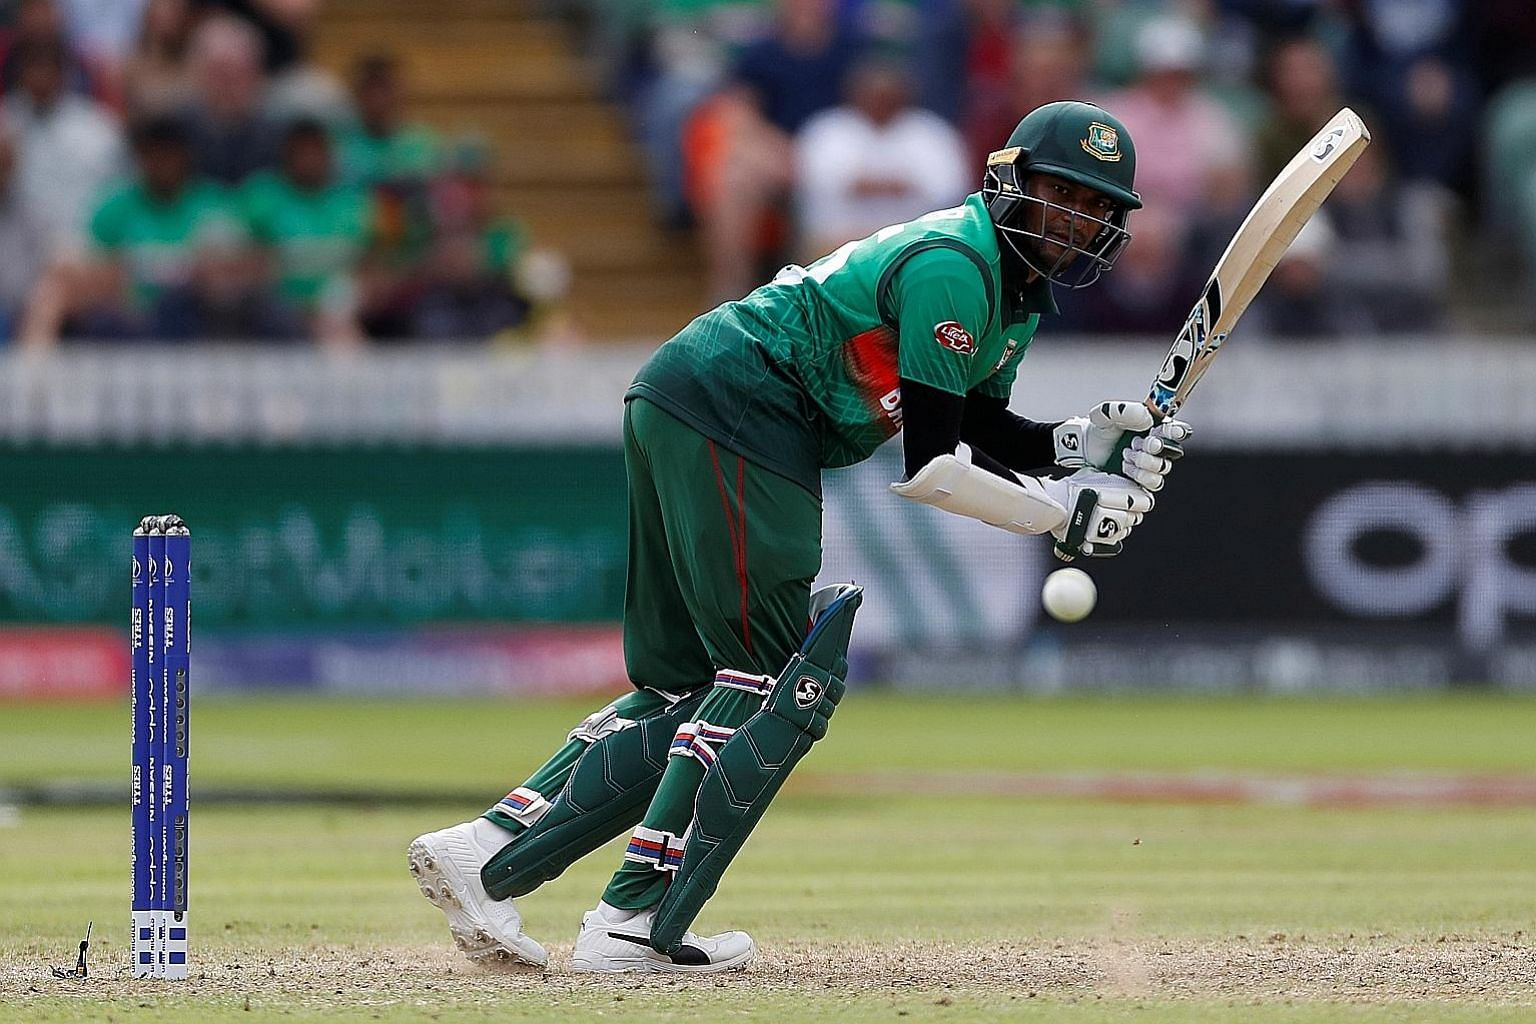 Bangladesh's Shakib Al Hasan hitting a shot against West Indies in their World Cup match in Taunton on Monday. Bangladesh won by seven wickets to keep their semi-final chances alive.